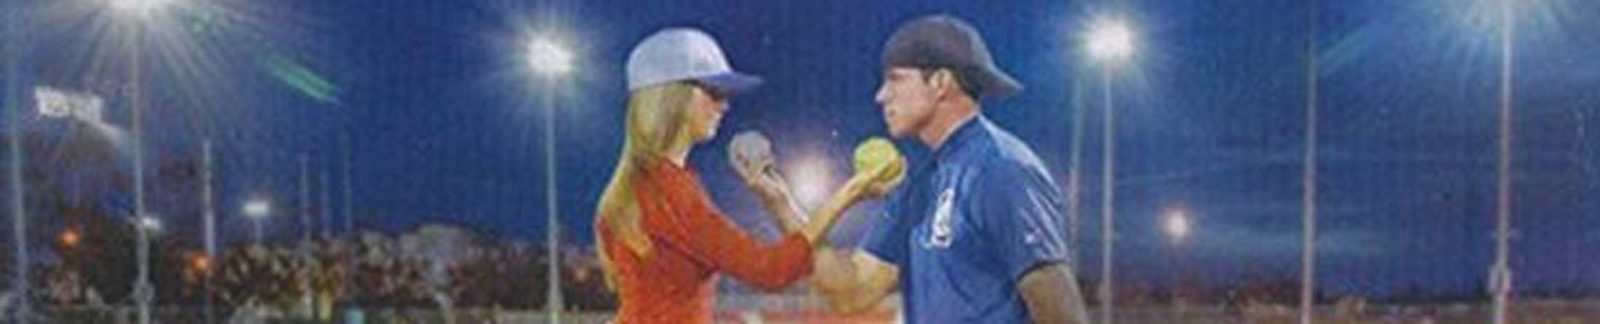 Pitching Love and Catching Faith - header